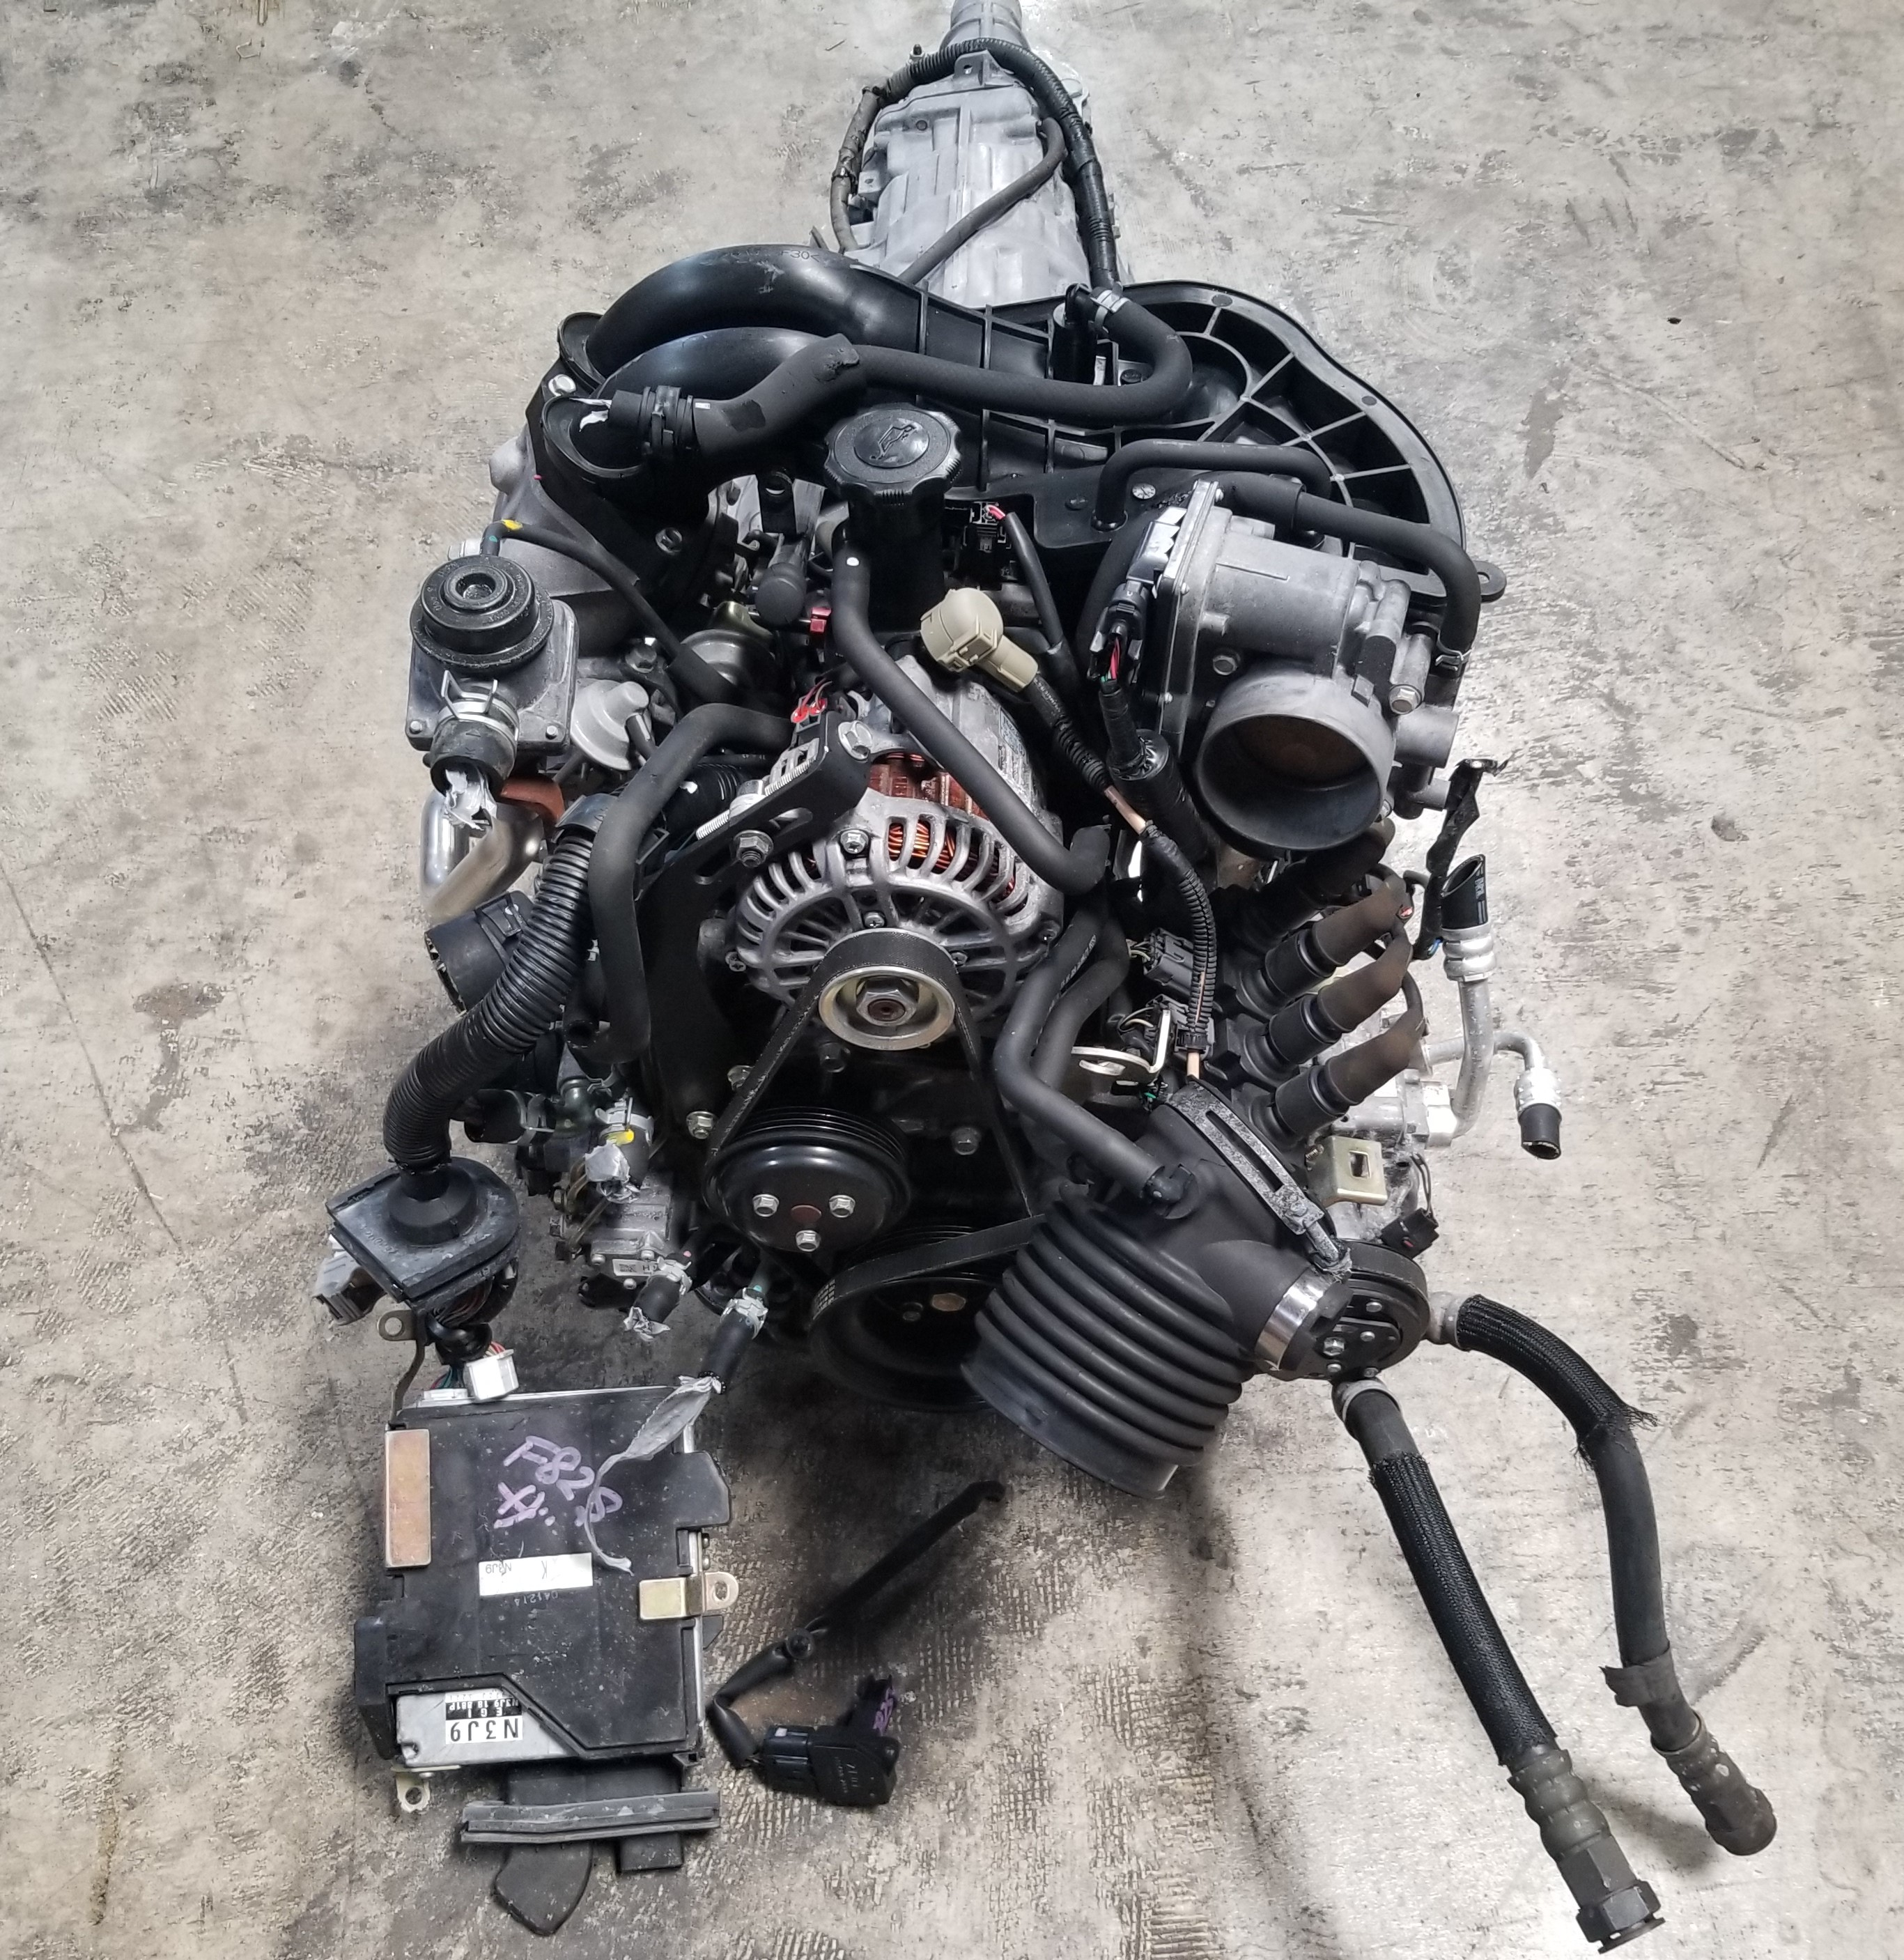 13b Engine: RX8 Mazda 13B 4 Port Renesis 1.3L Rotary Engine Swap Auto